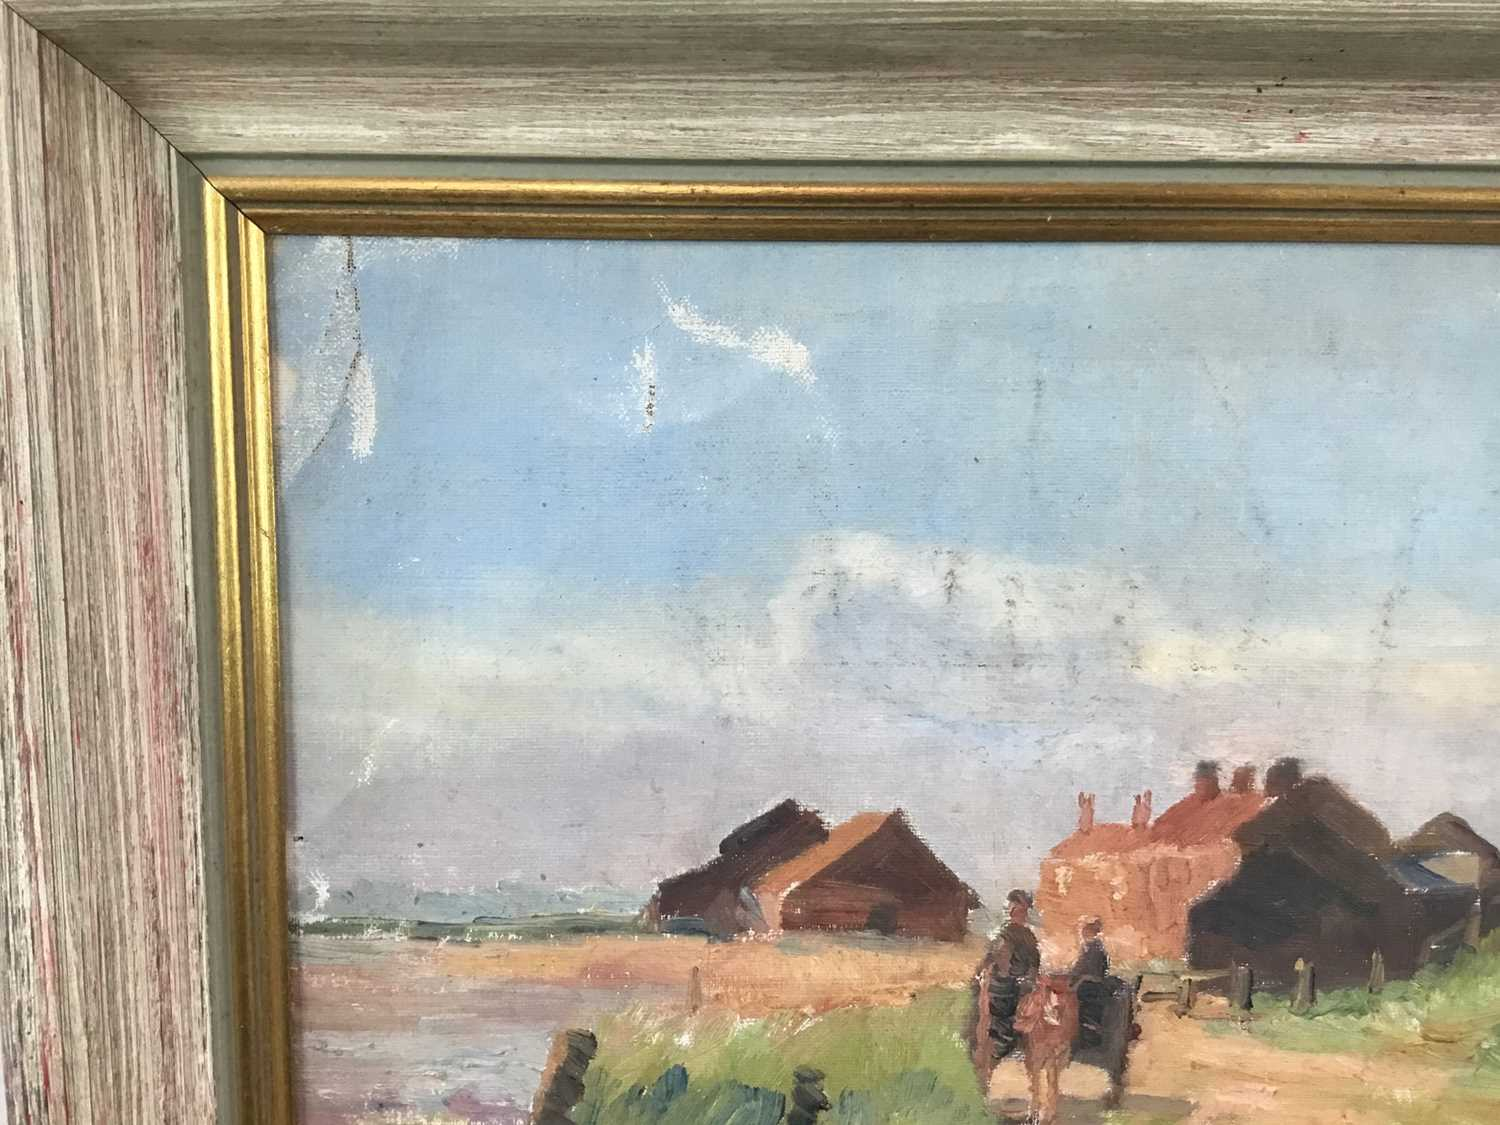 Robert G. D. Alexander (1875-1945) oil on canvas laid on board - Kirby Quay, Essex, with Carters Mil - Image 6 of 9